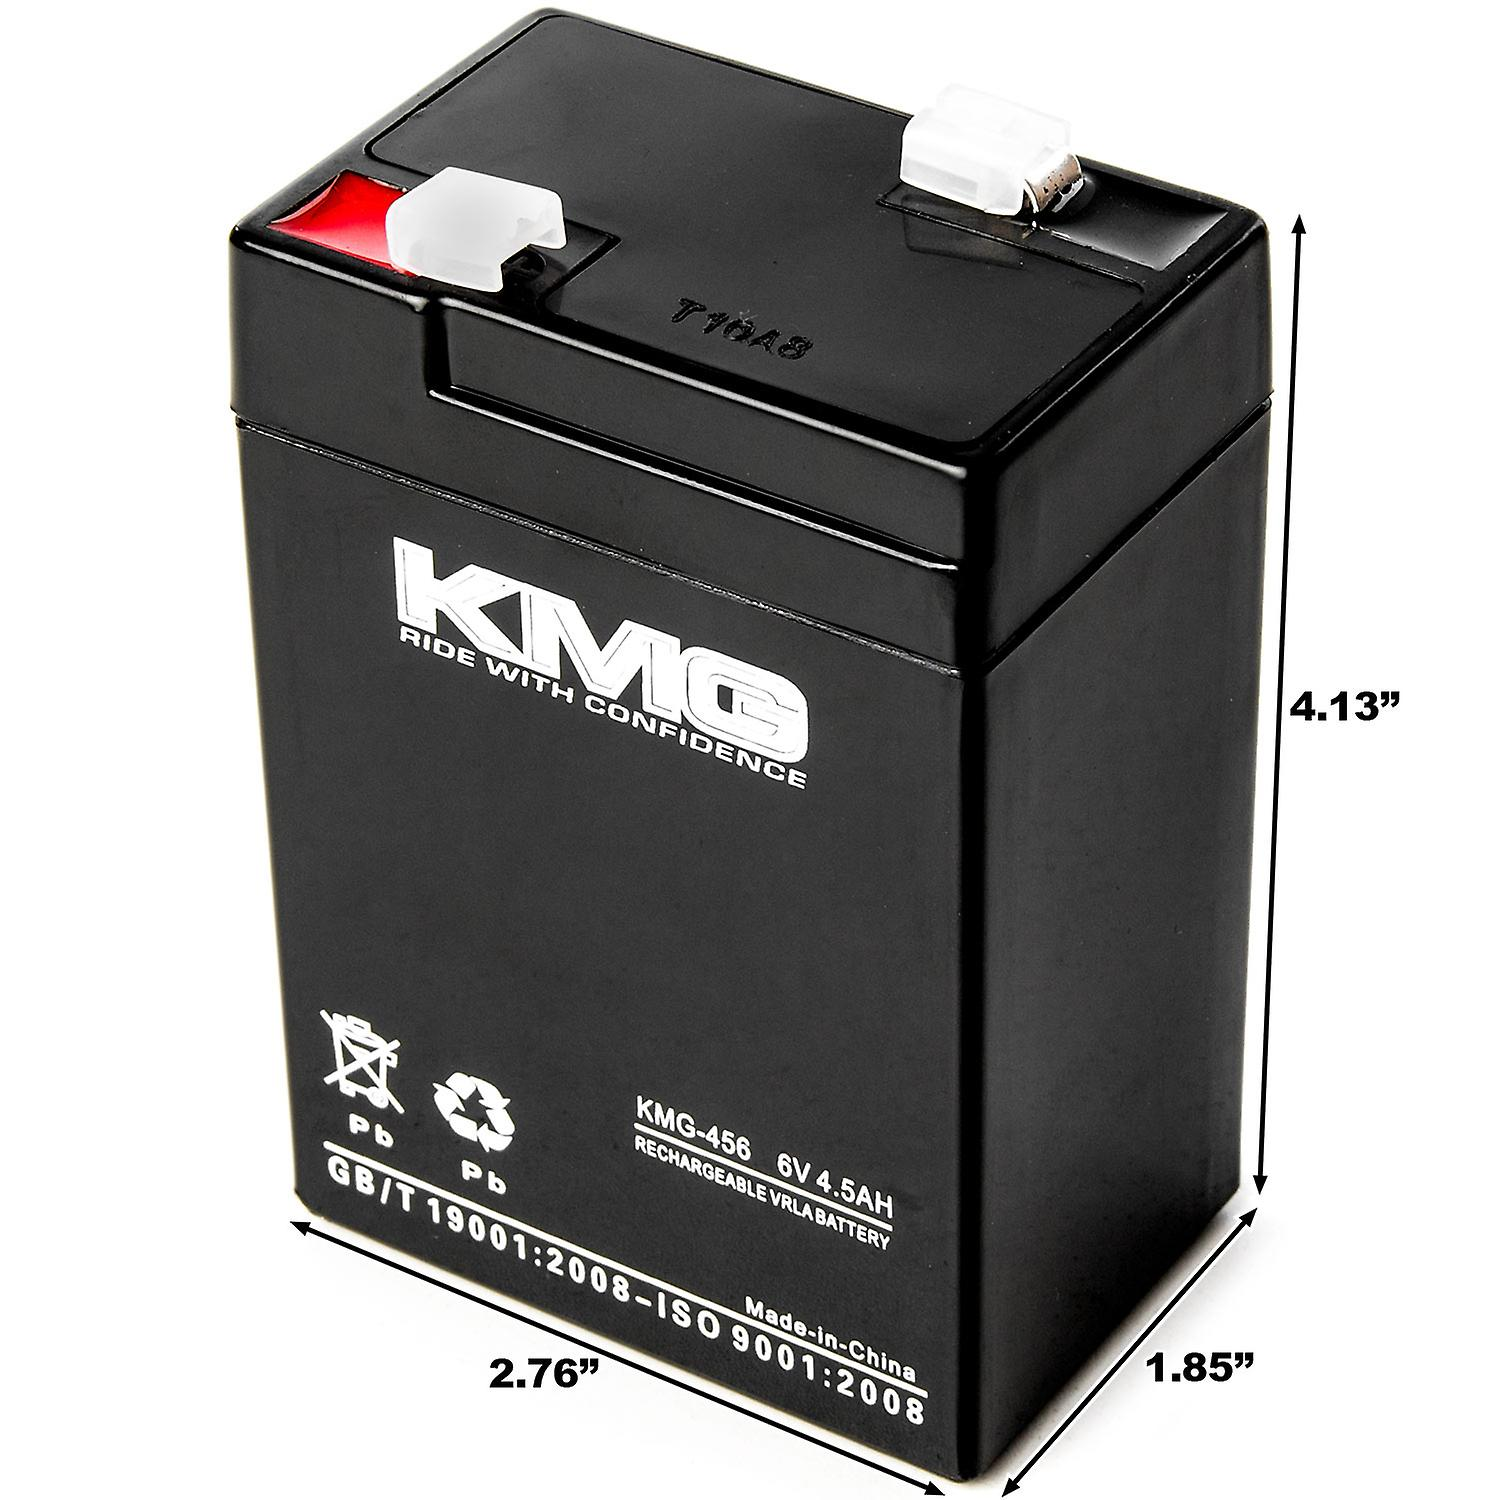 KMG 6 Volts 4 5Ah Replacement Battery for Sola UPS/2500A